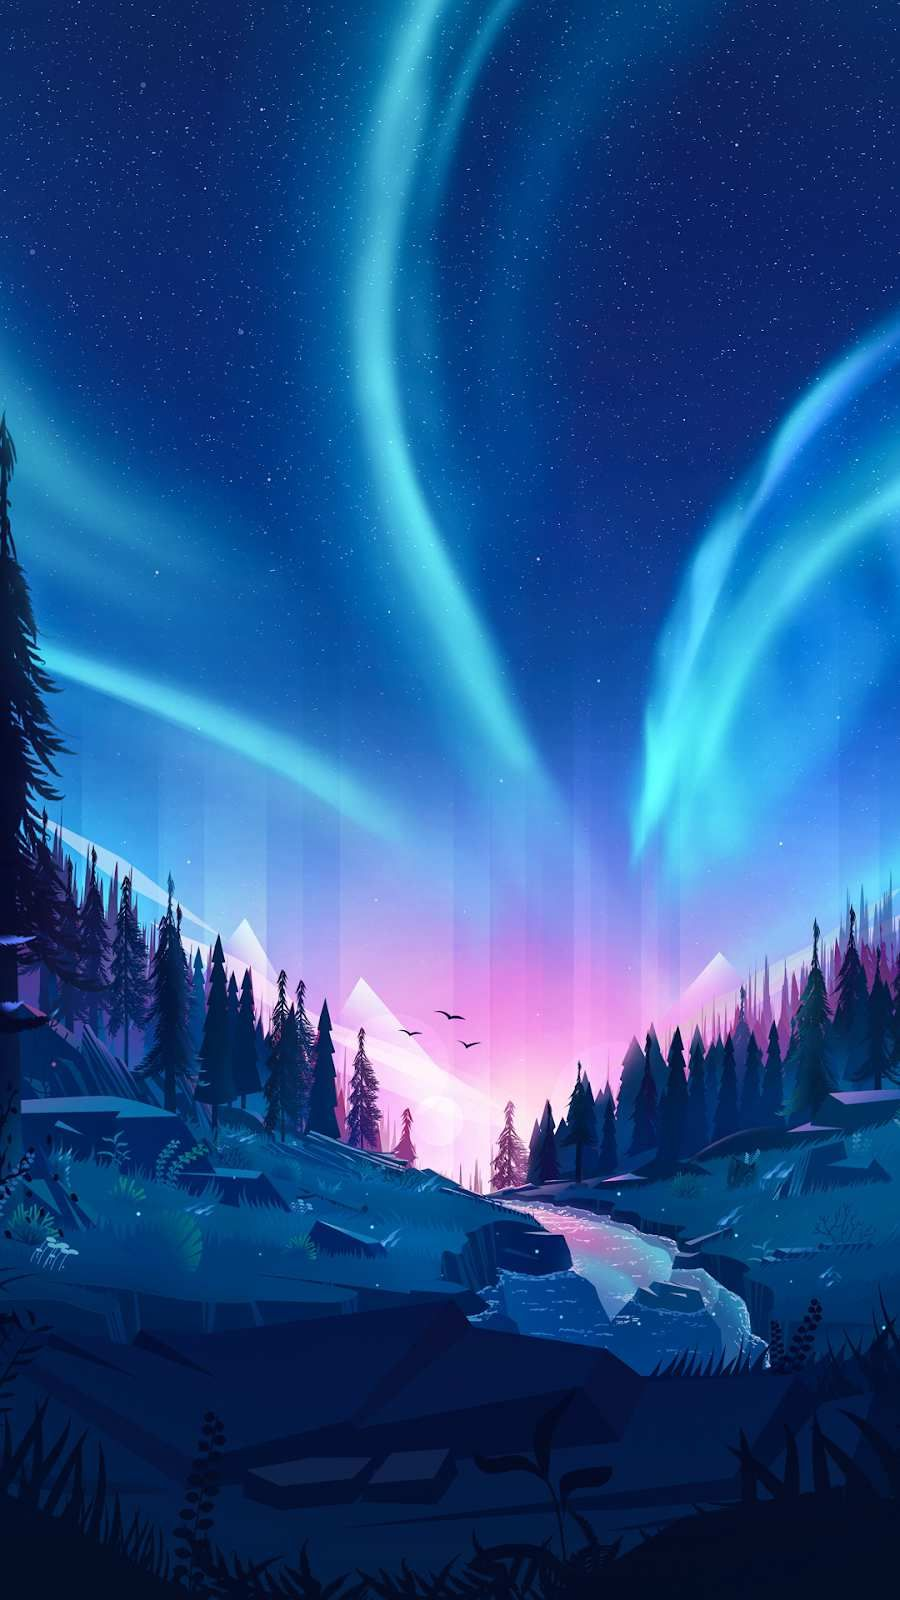 Beautiful Nature Aurora Sky Art iPhone Wallpaper Scenery